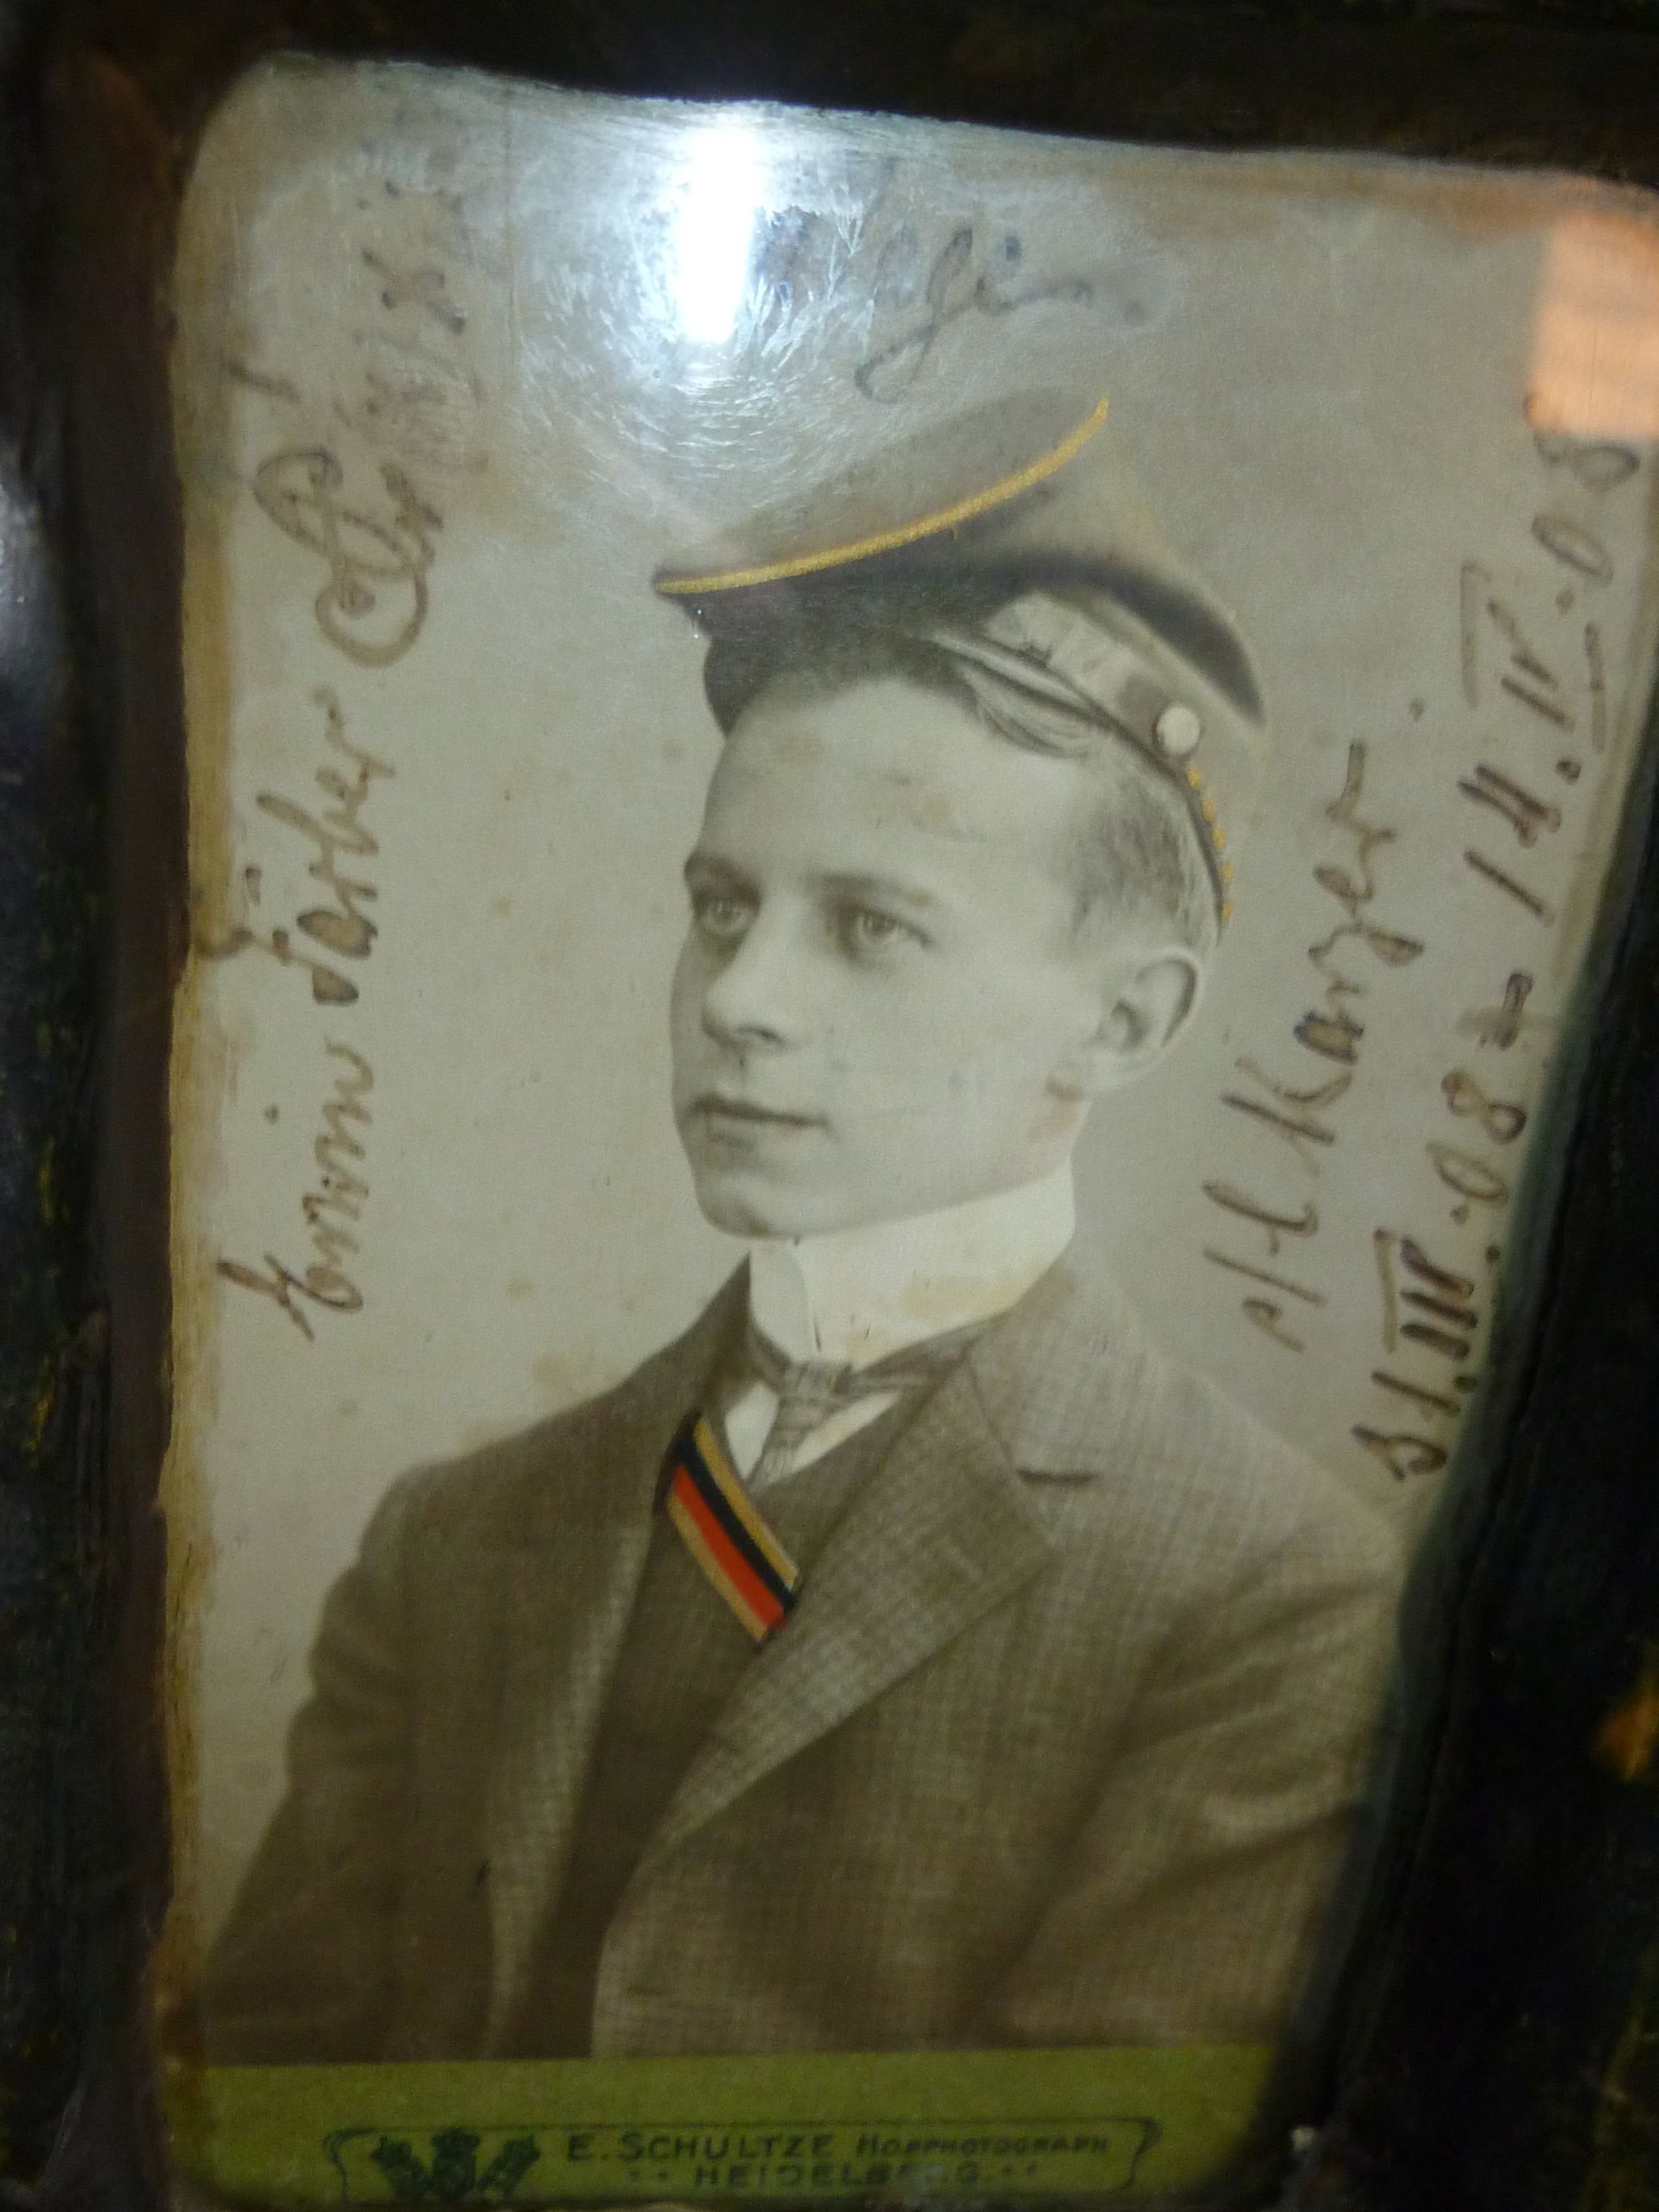 Astudent wearing the fraternity hat circa 1889